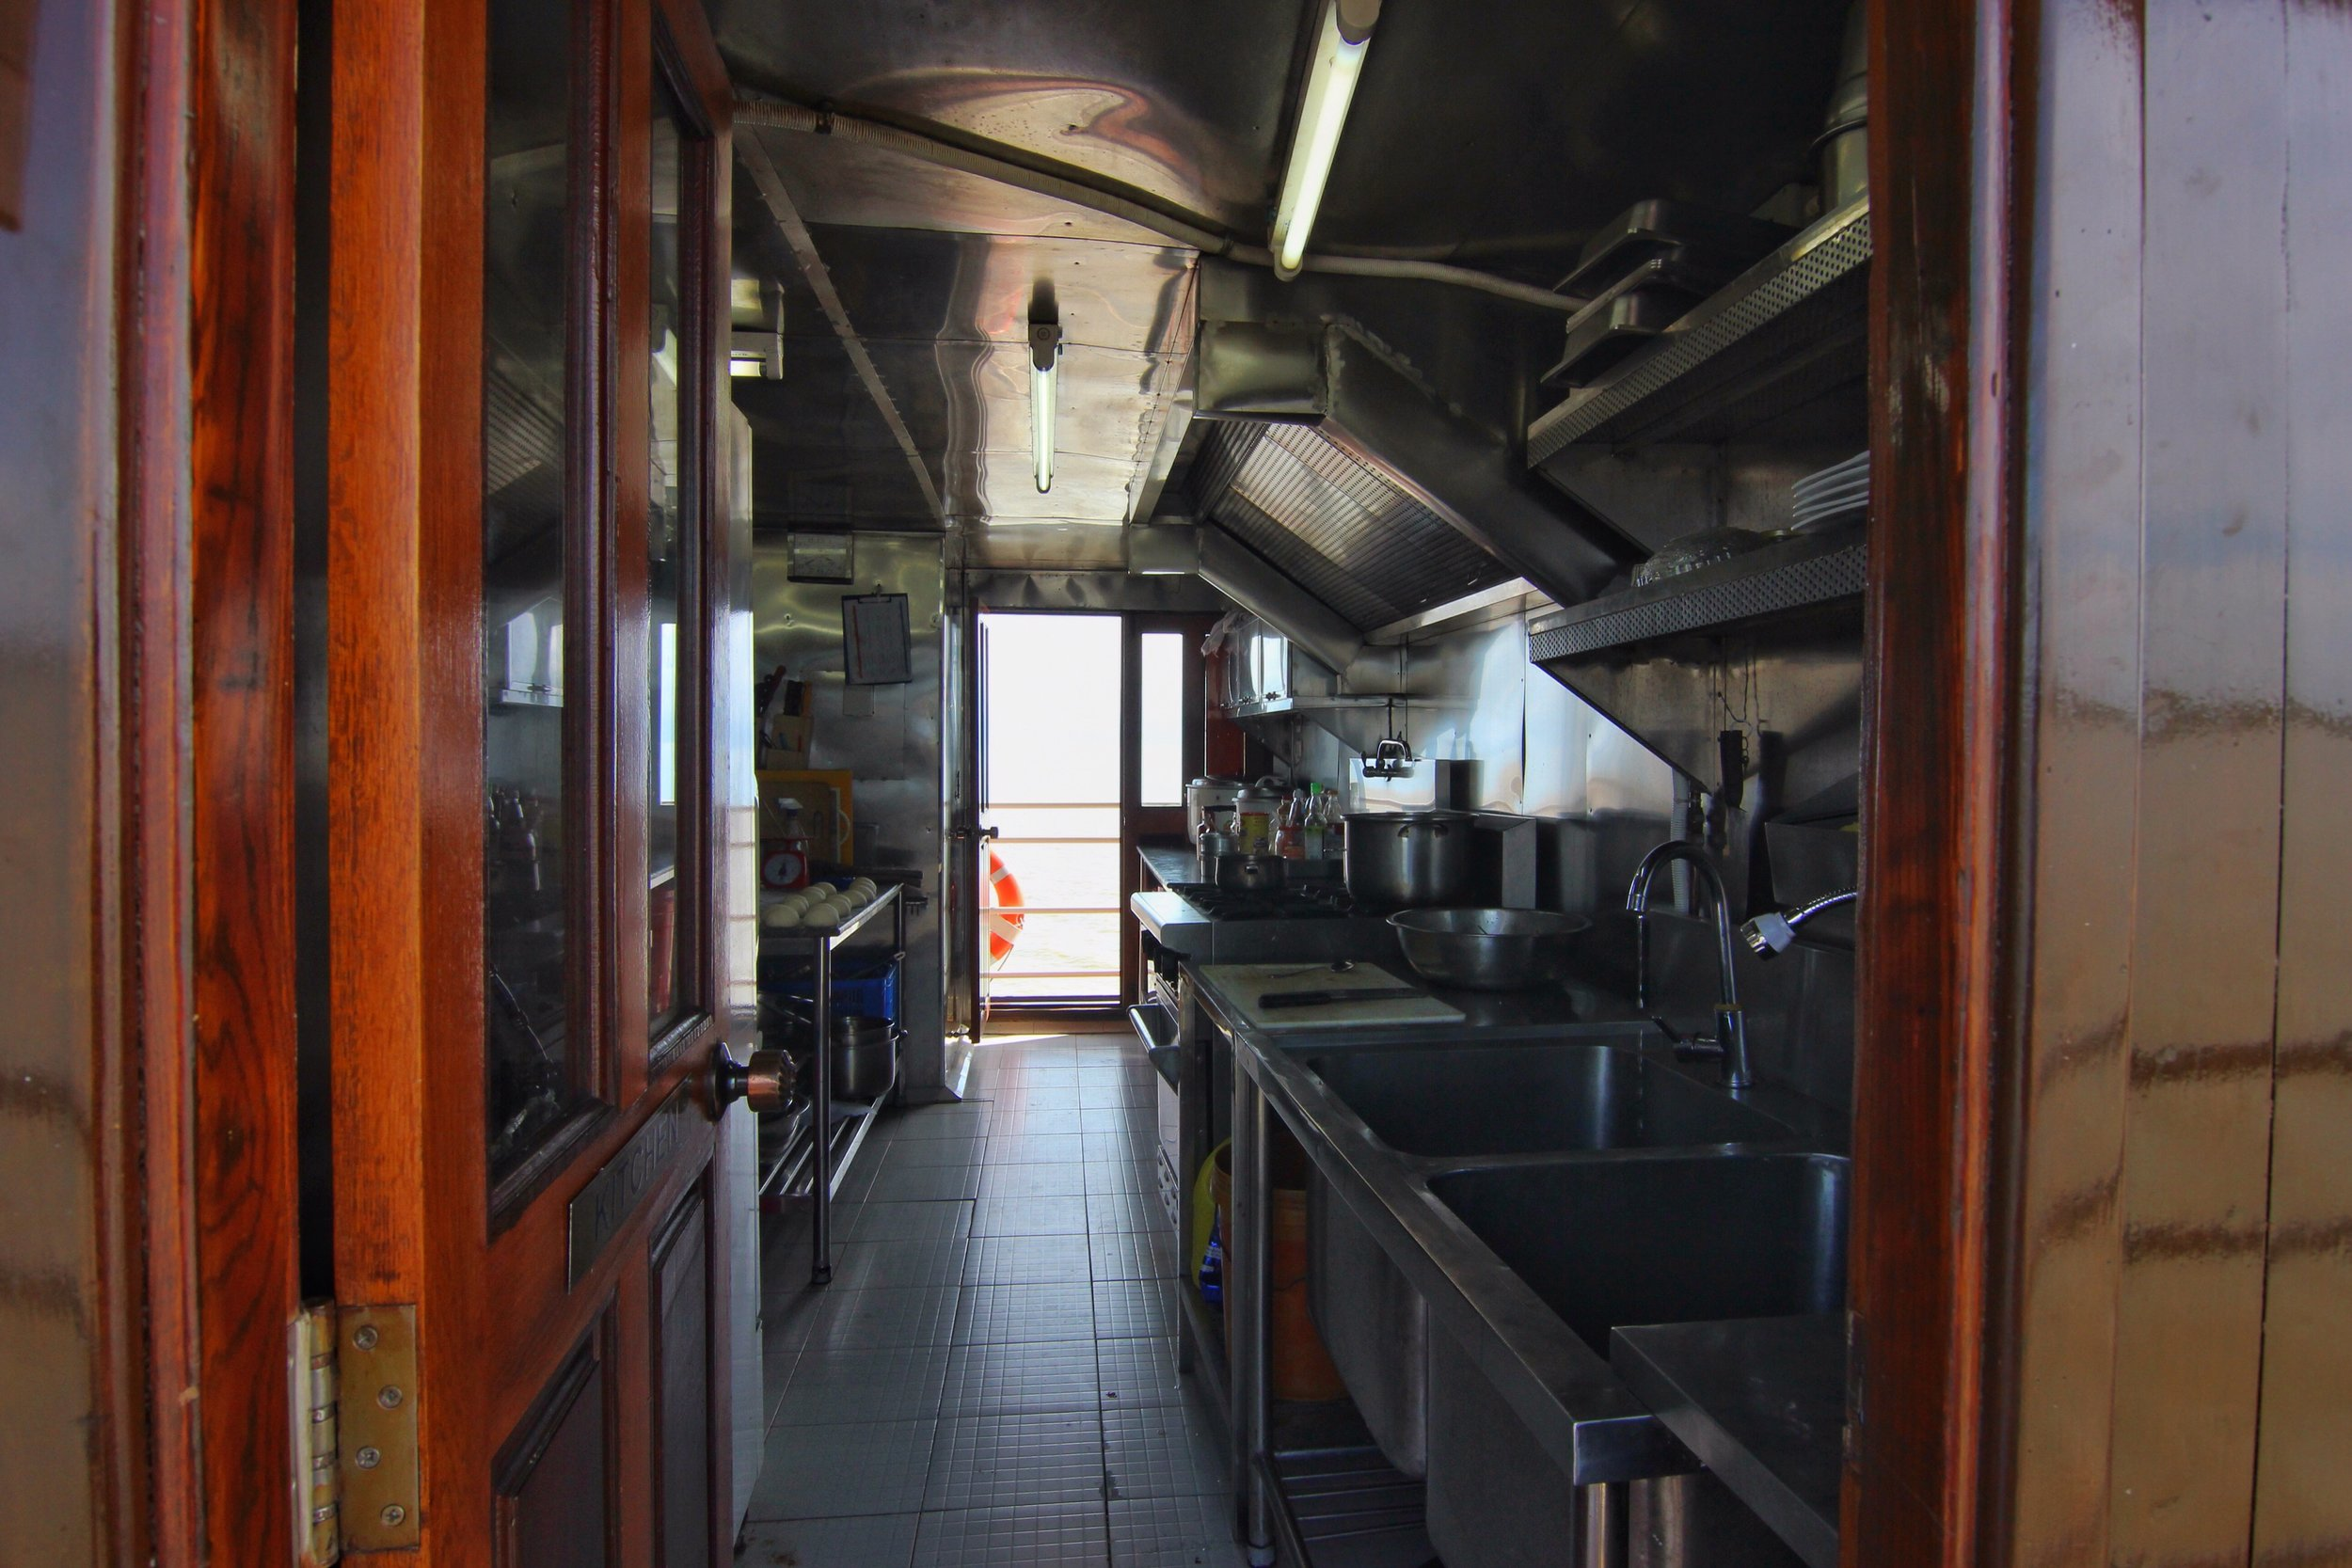 The kitchen, where our awesome staff churns out delectable multi-course meals.